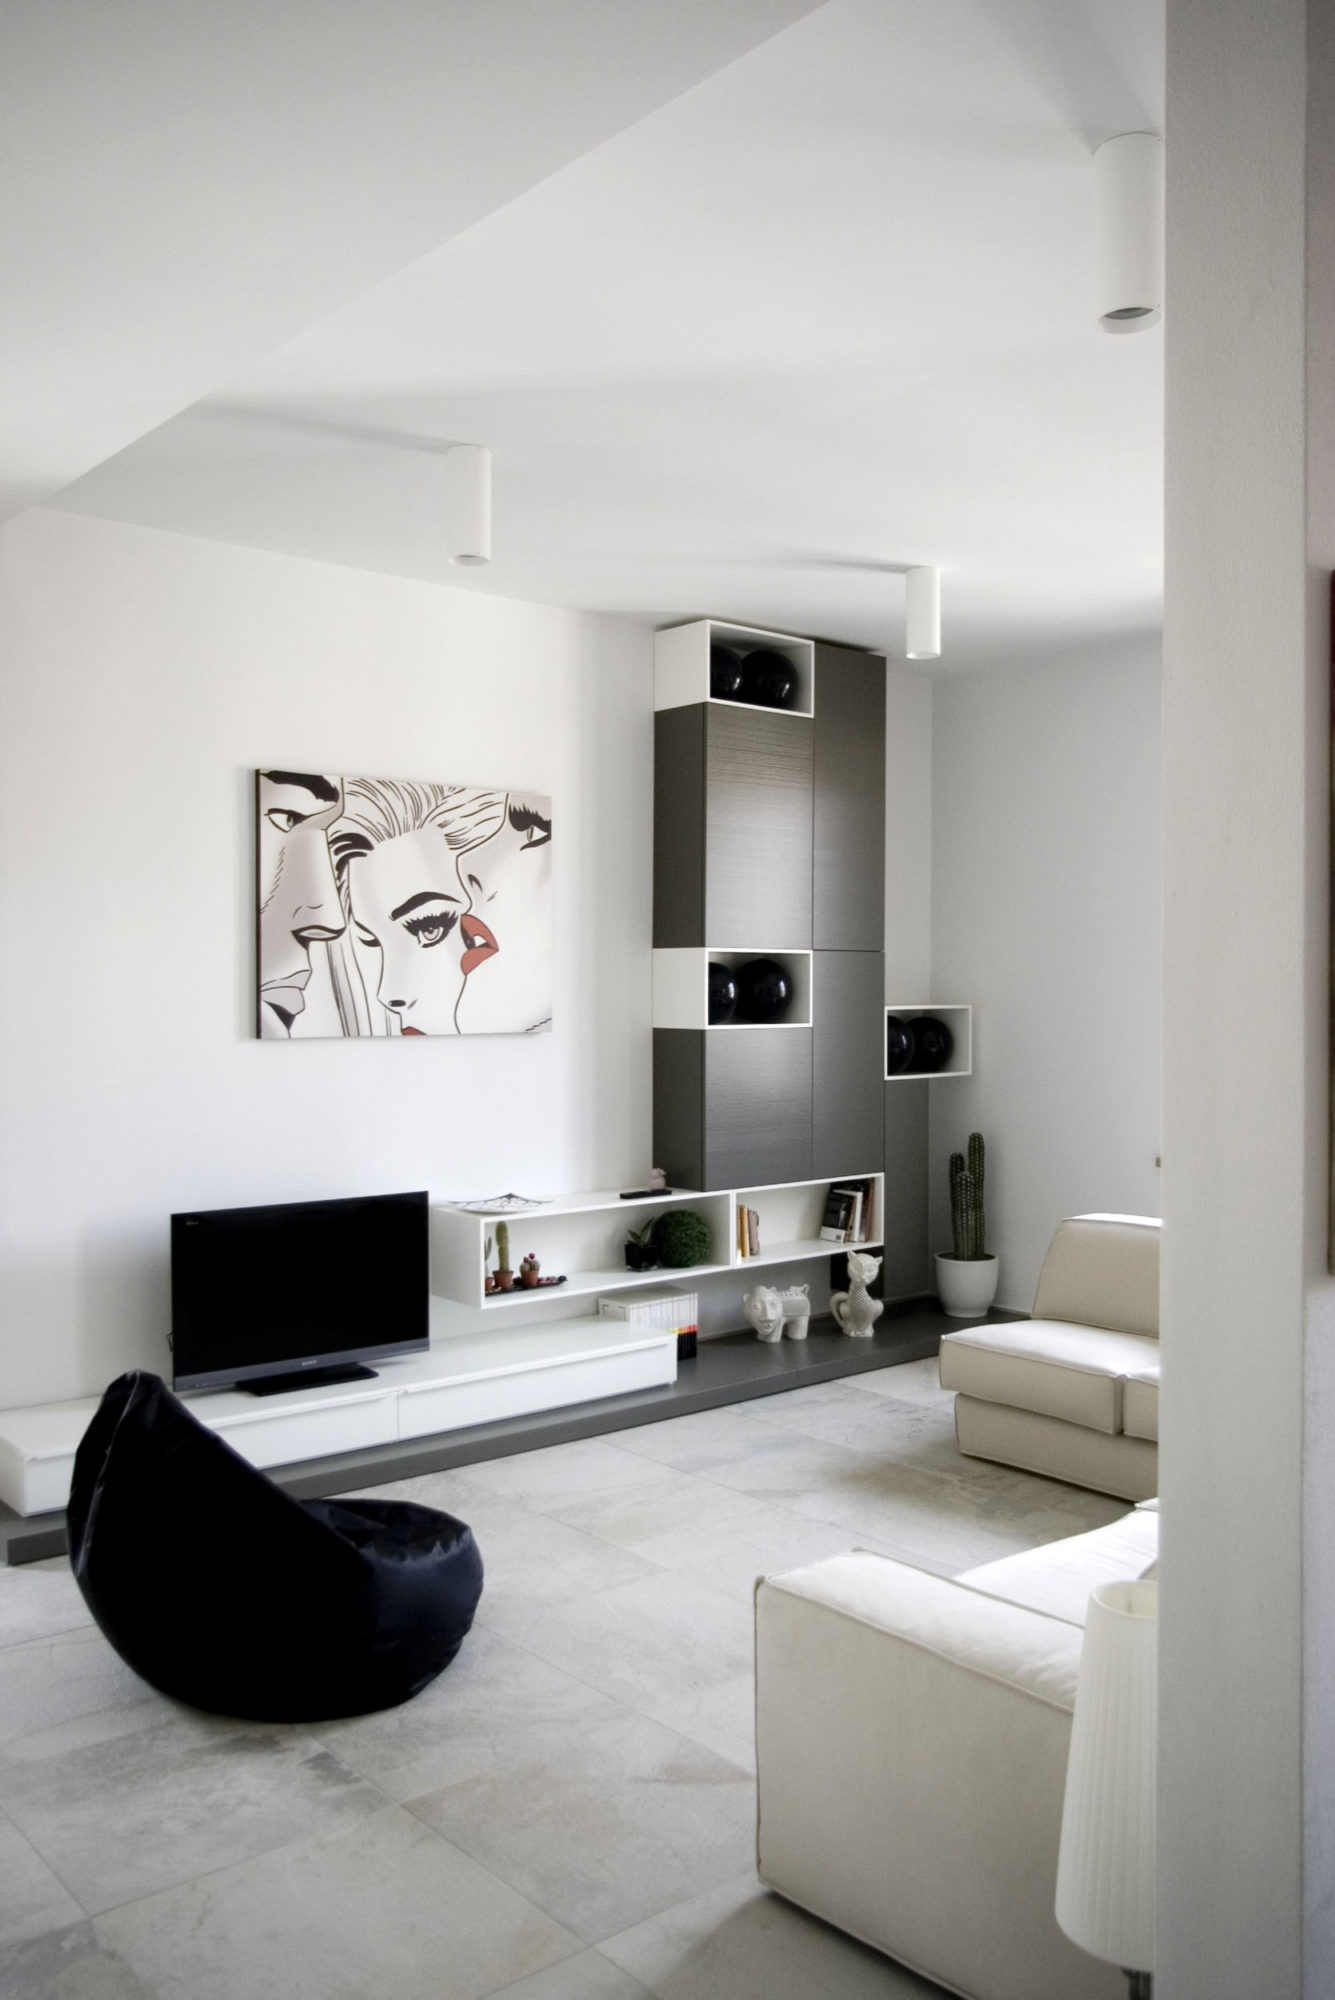 Minimalist interior by msx2 architettura for Minimalist apartment design